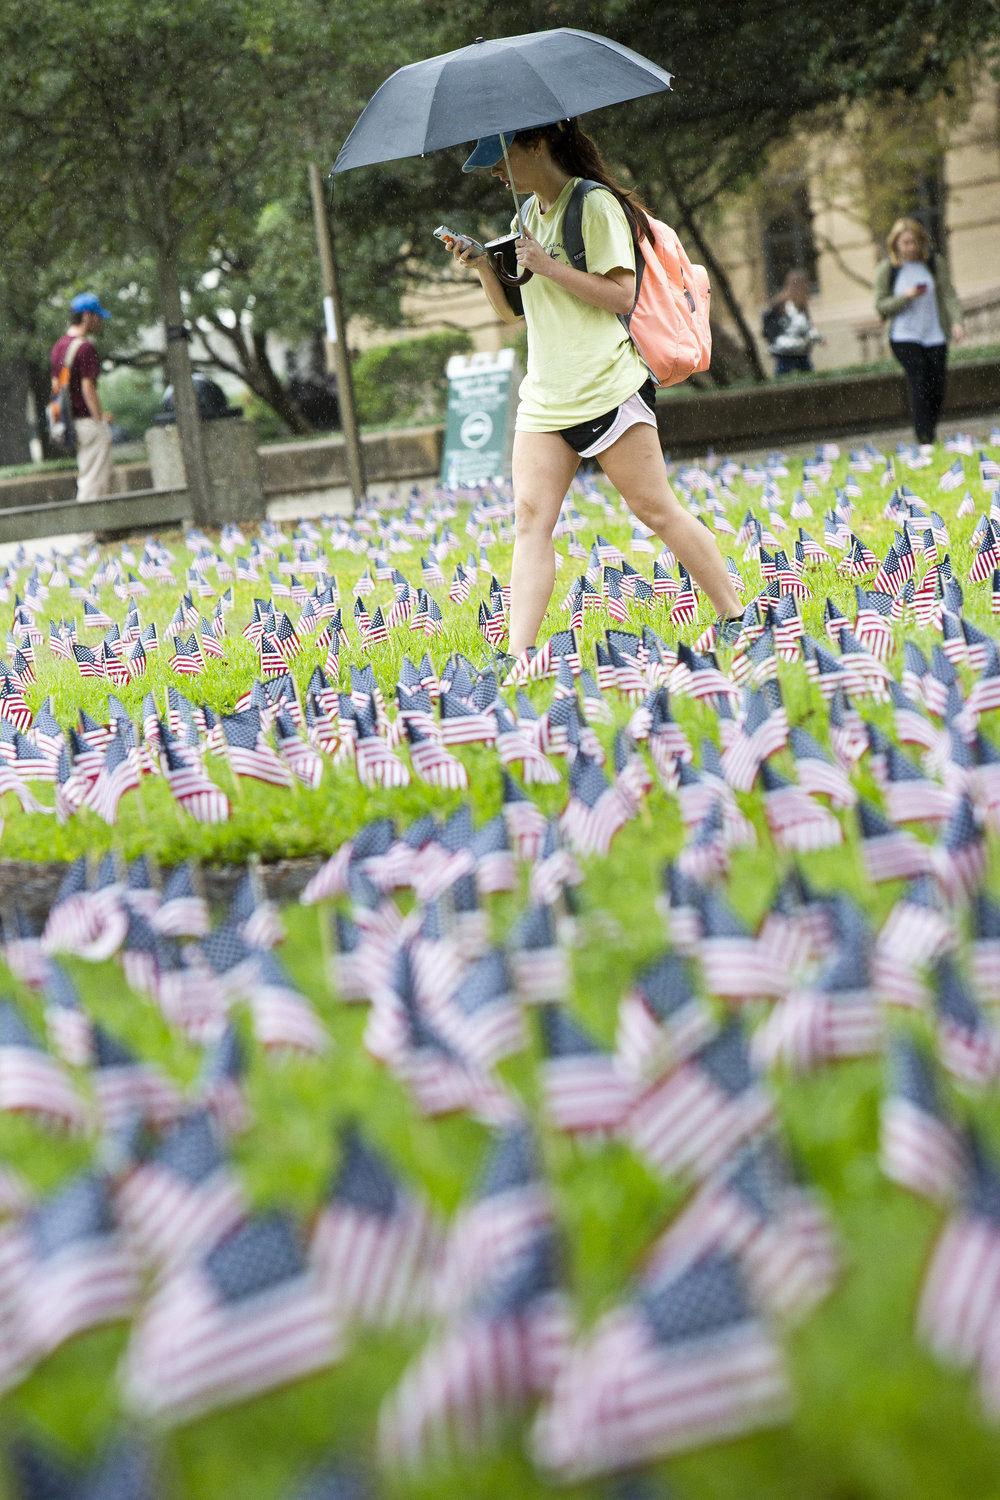 Texas A&M junior sociology major Madi De Amaral make her way through the the Academic Plaza where the university and the Lone Survivor Foundation have set out thousands of flags in an extended Veterans Day observance, Wednesday, Nov. 9, 2016, in College Station, Texas. (Timothy Hurst/The Eagle)